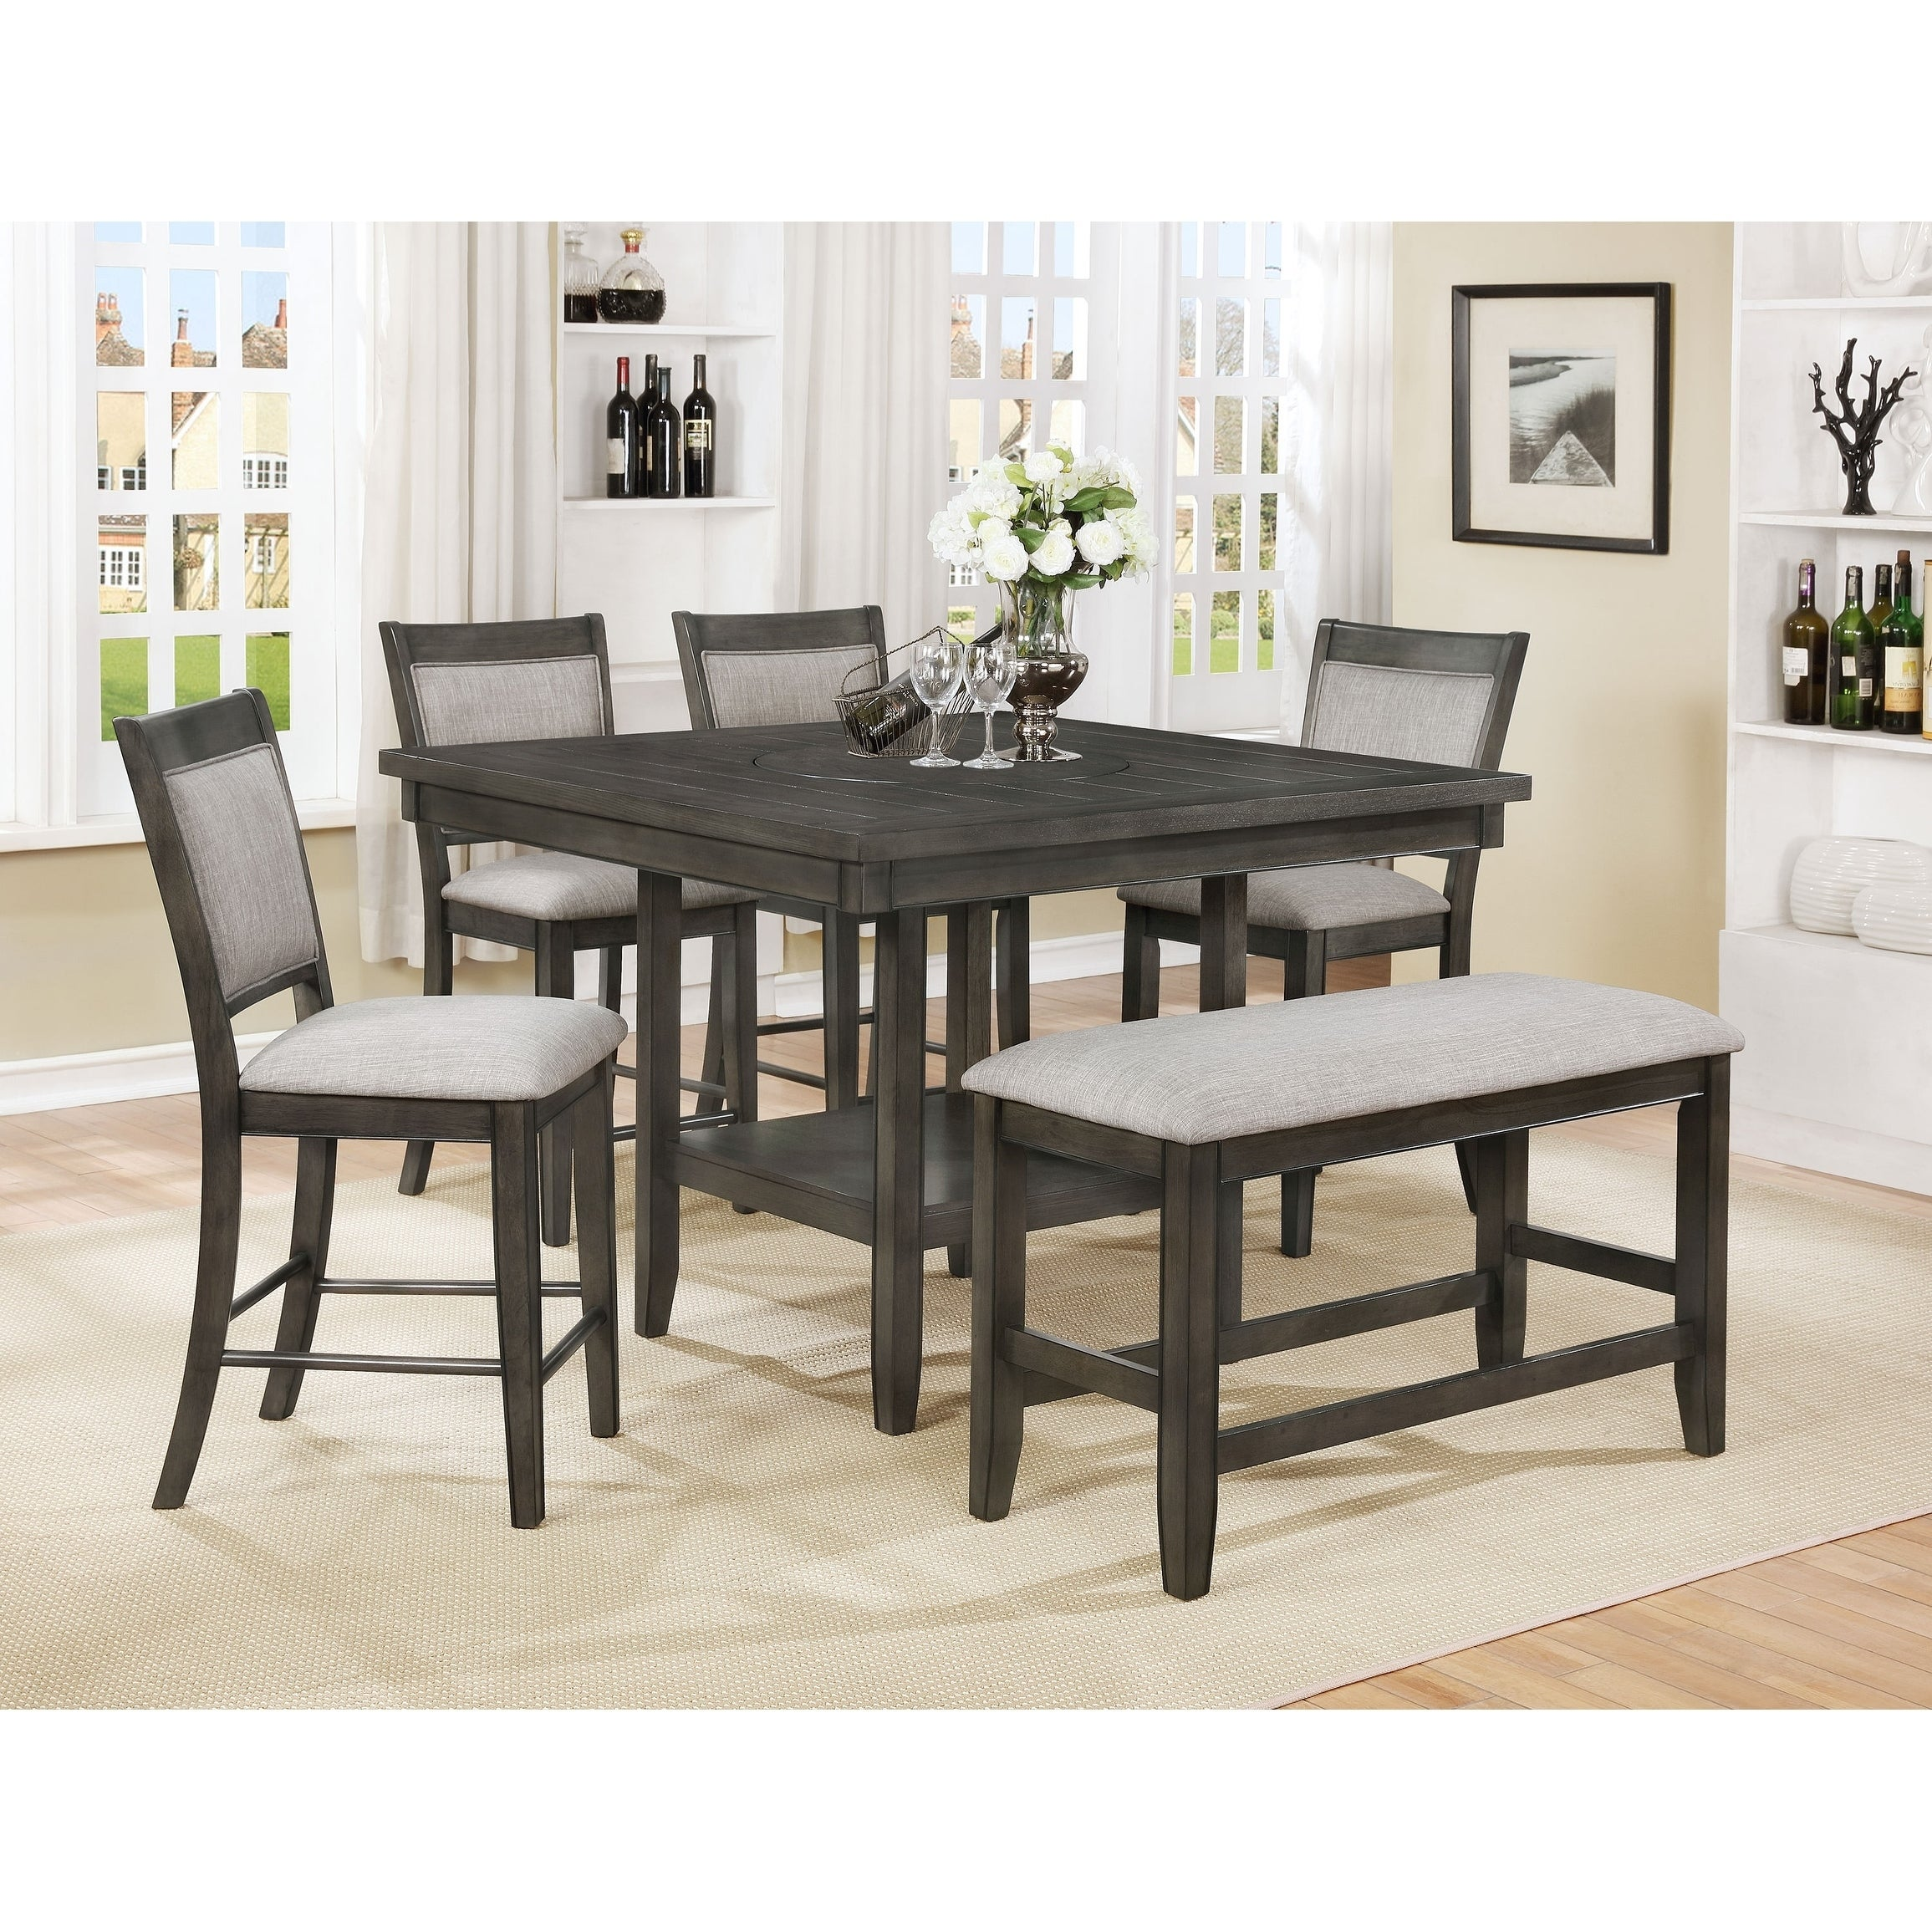 OS Home and Office Model 2727KB Counter Height Dining Table with Four Upholstered Chairs and One Bench